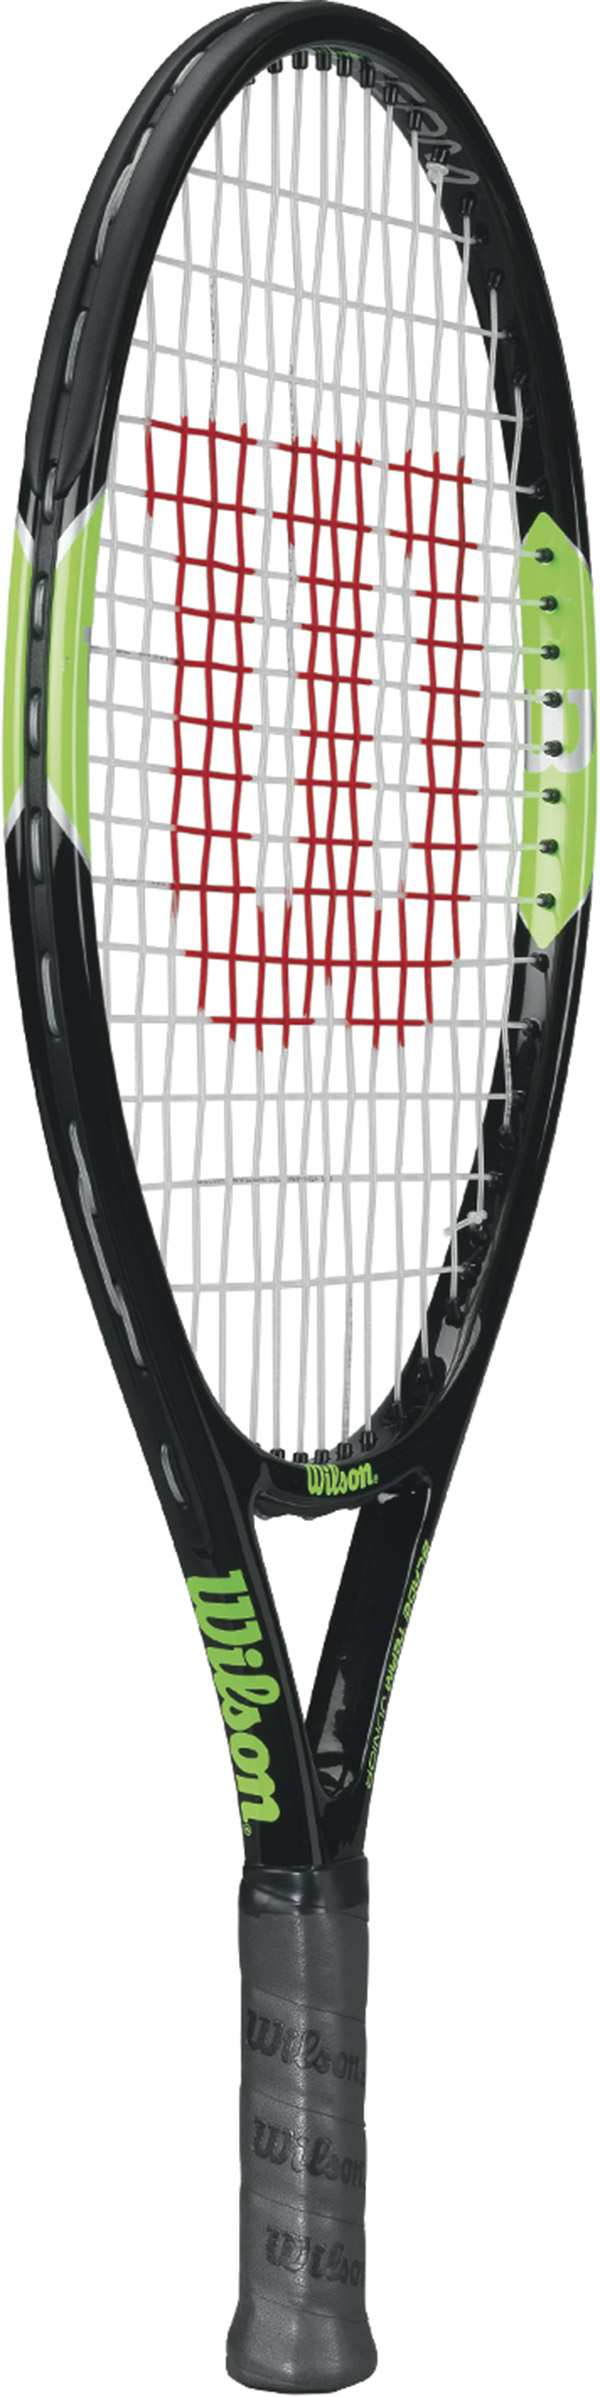 Wilson Blade Team 21 Junior (Strung)